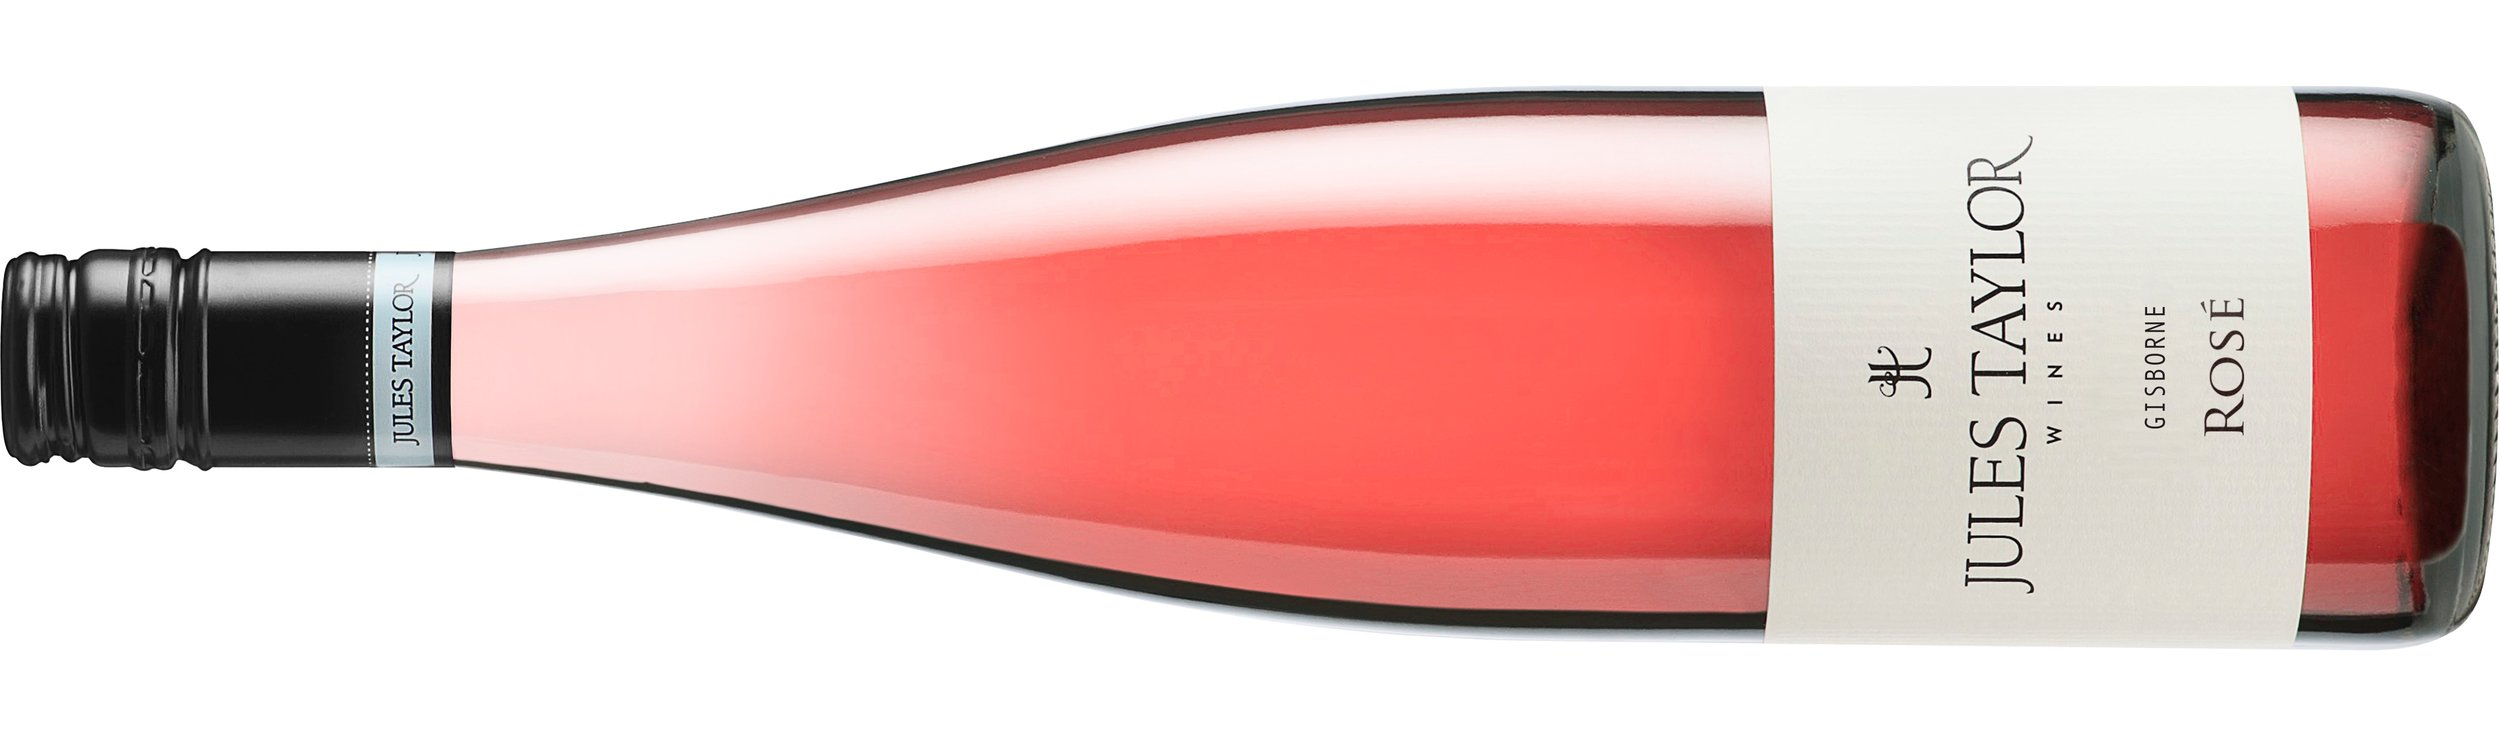 "ジュルズテイラー  ロゼ    |  JULES TAYLOR WINES Rose  ギスボーンブライアント&レキキン ヴィンヤード  ¥ 2,700, 2017, 750ml 13.0%  James Suckling 89 points  RS. 1g/L, pH. 3.34, TA. 5.92/L  Pale cherry in hue with lifted aromas of macerated strawberries, raspberry coulis and redcurrant. Hints of red licorice, spice and the merest waft of herbs. Well poised on the palate with a nice tension between the fruit and acidity. Again red-fruit characters dominate and the wine finishes clean and refreshing. Perfect summer drinking.  .淡いチェリー色、やわらかくなったいちご、ラズベリーのピュレと赤スグリの香りがある。かすかな赤い甘草、スパイス、そしてほんのり香るハーブ。 口当たりには、果物と酸味が素晴らしい緊張を保っています。 やはり赤い果実の特徴が大半を占め、クリーンでさわやかなフィニッシュ。 夏にぴったりです。    Raymond Chan Wine Reviews - 4 Stars   ""The nose is fresh with firmly packed and intense aroma of strawberries and cream and a little raspberry fruit, with lifted red florals. The fruit is vibrant and mouthwatering, unfolding hints of confectionary. Dry to taste and medium-bodied, the palate has a fine and elegantly concentrated, deep, core of strawberries, and raspberries and cream, along with bright red floral notes. The palate is refreshing and vigorous with bright acidity, and a thirst-quenching, dry, fine-textured line. The wine flows with good linearity, leading to a long, mouth-wateringly dry finish of strawberries, raspberries and cherries.     詳しく"